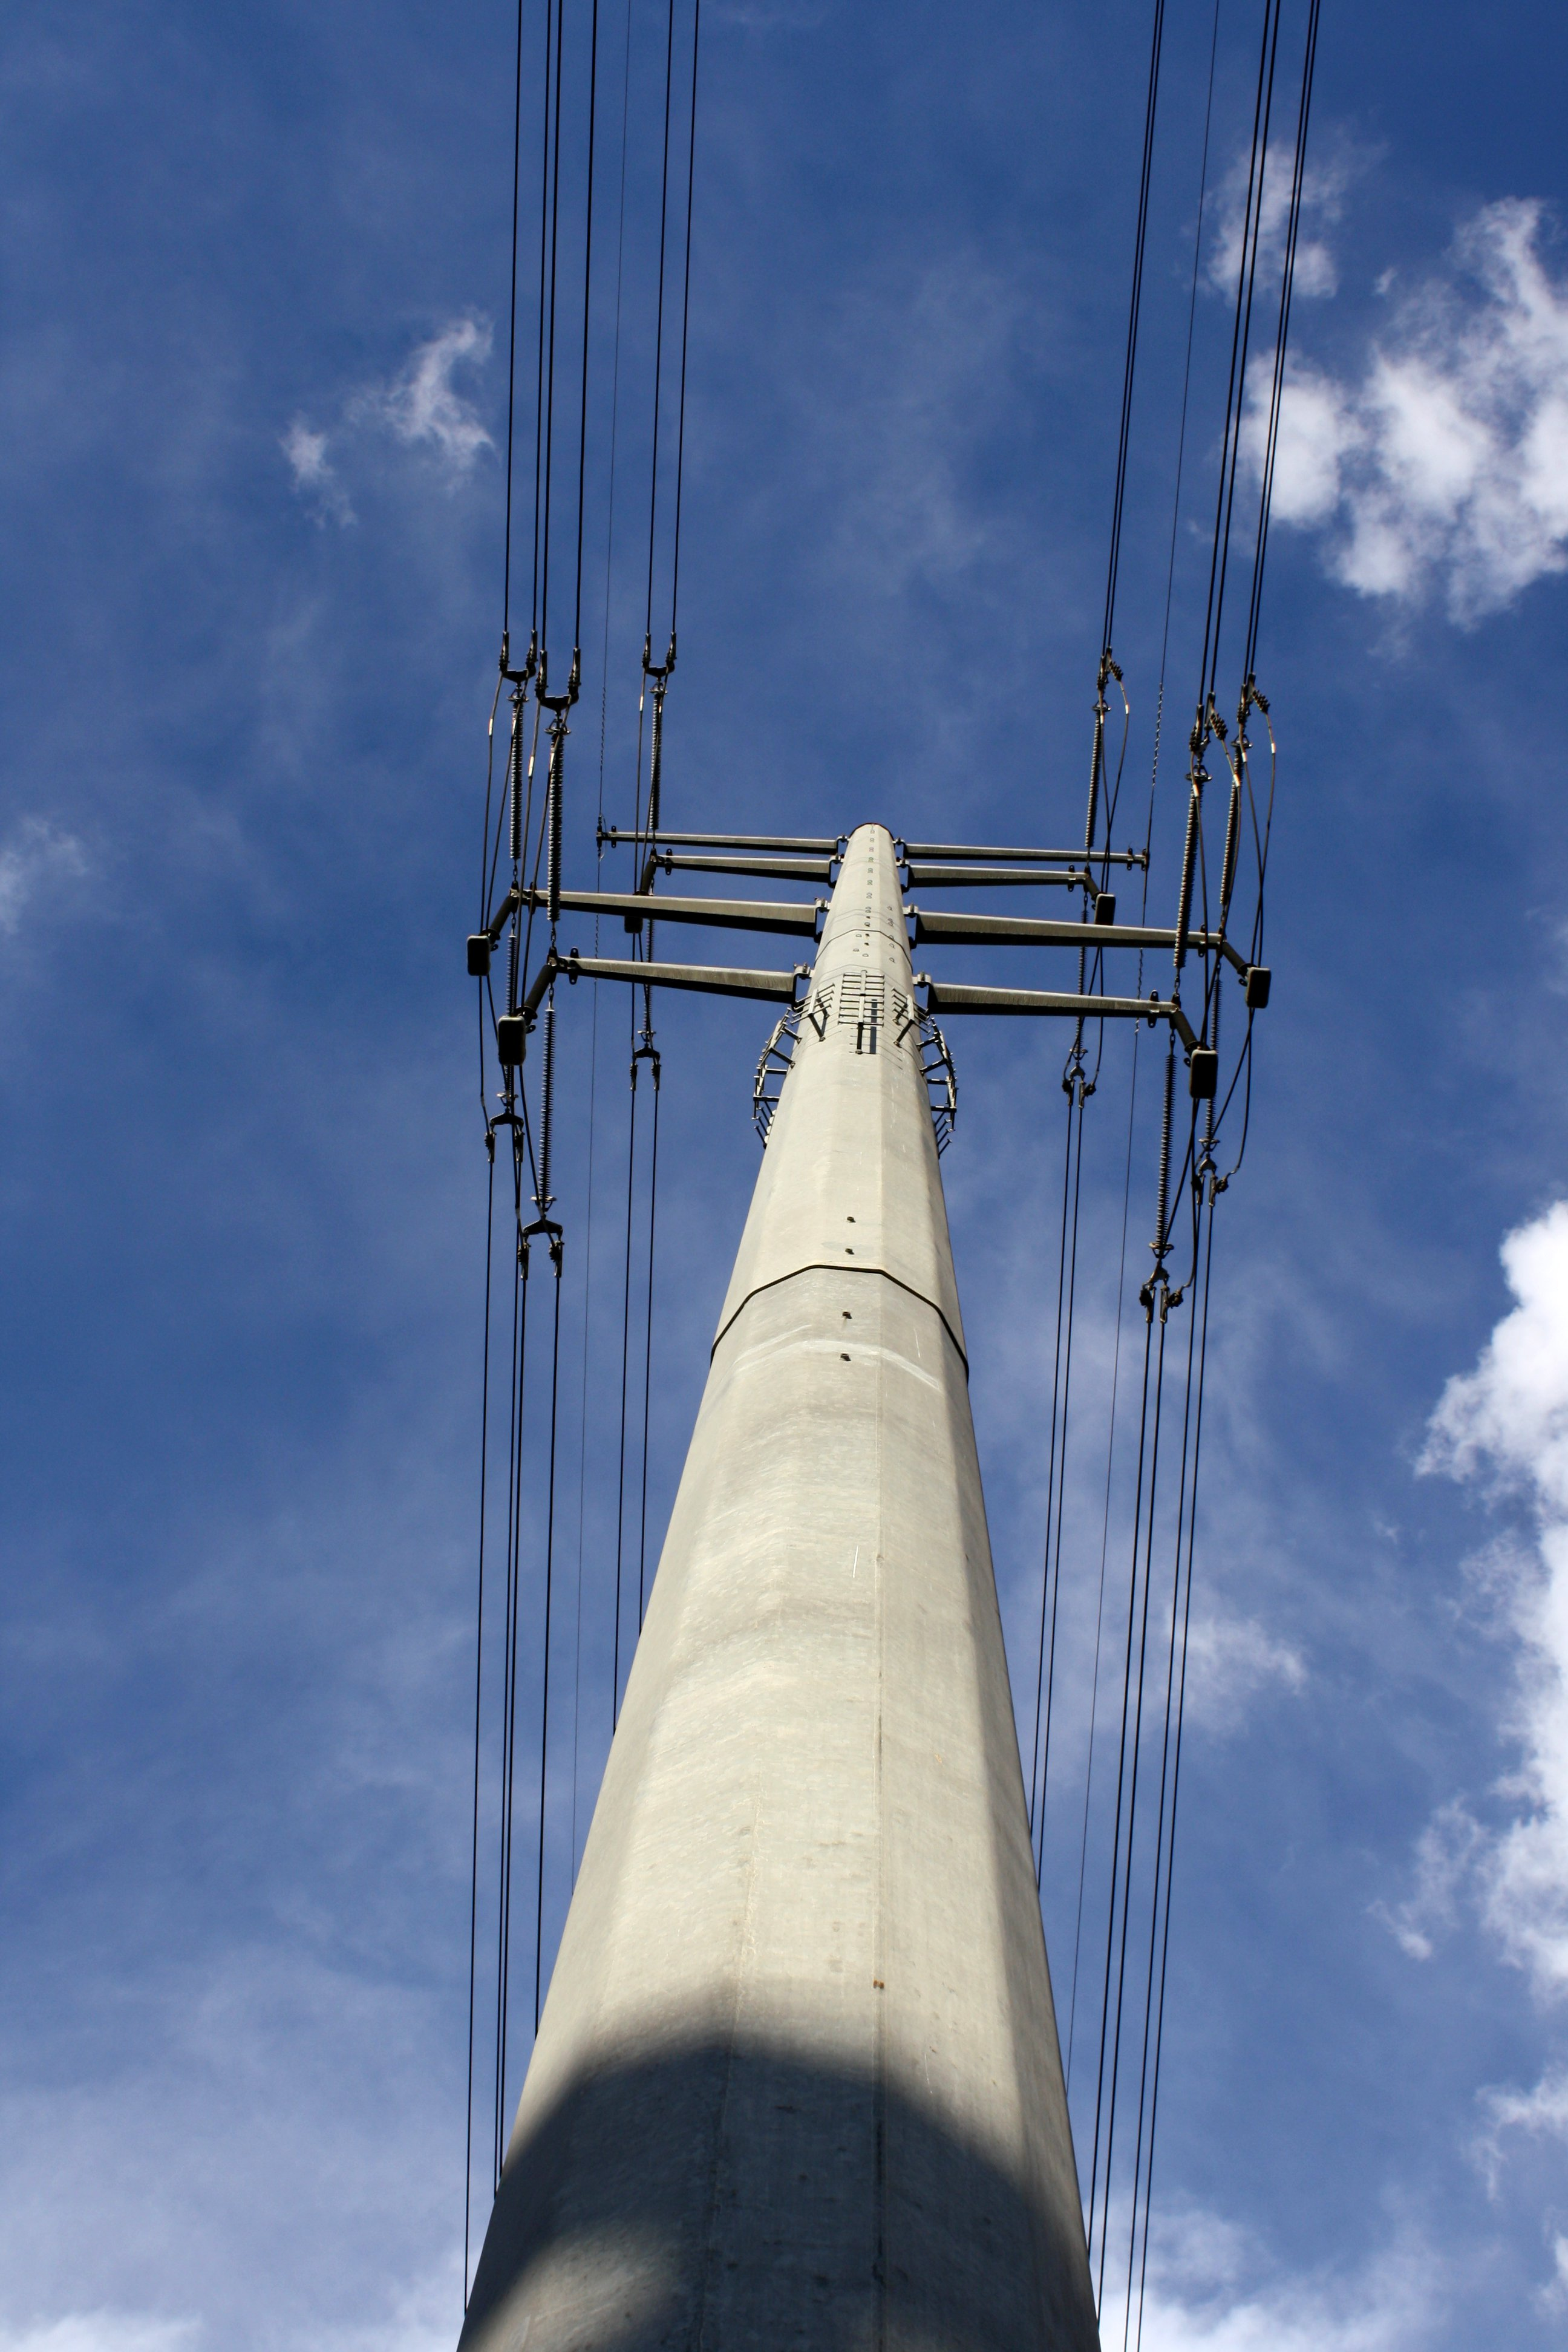 Concrete Electric Poles : Electric transmission wires and pole picture free